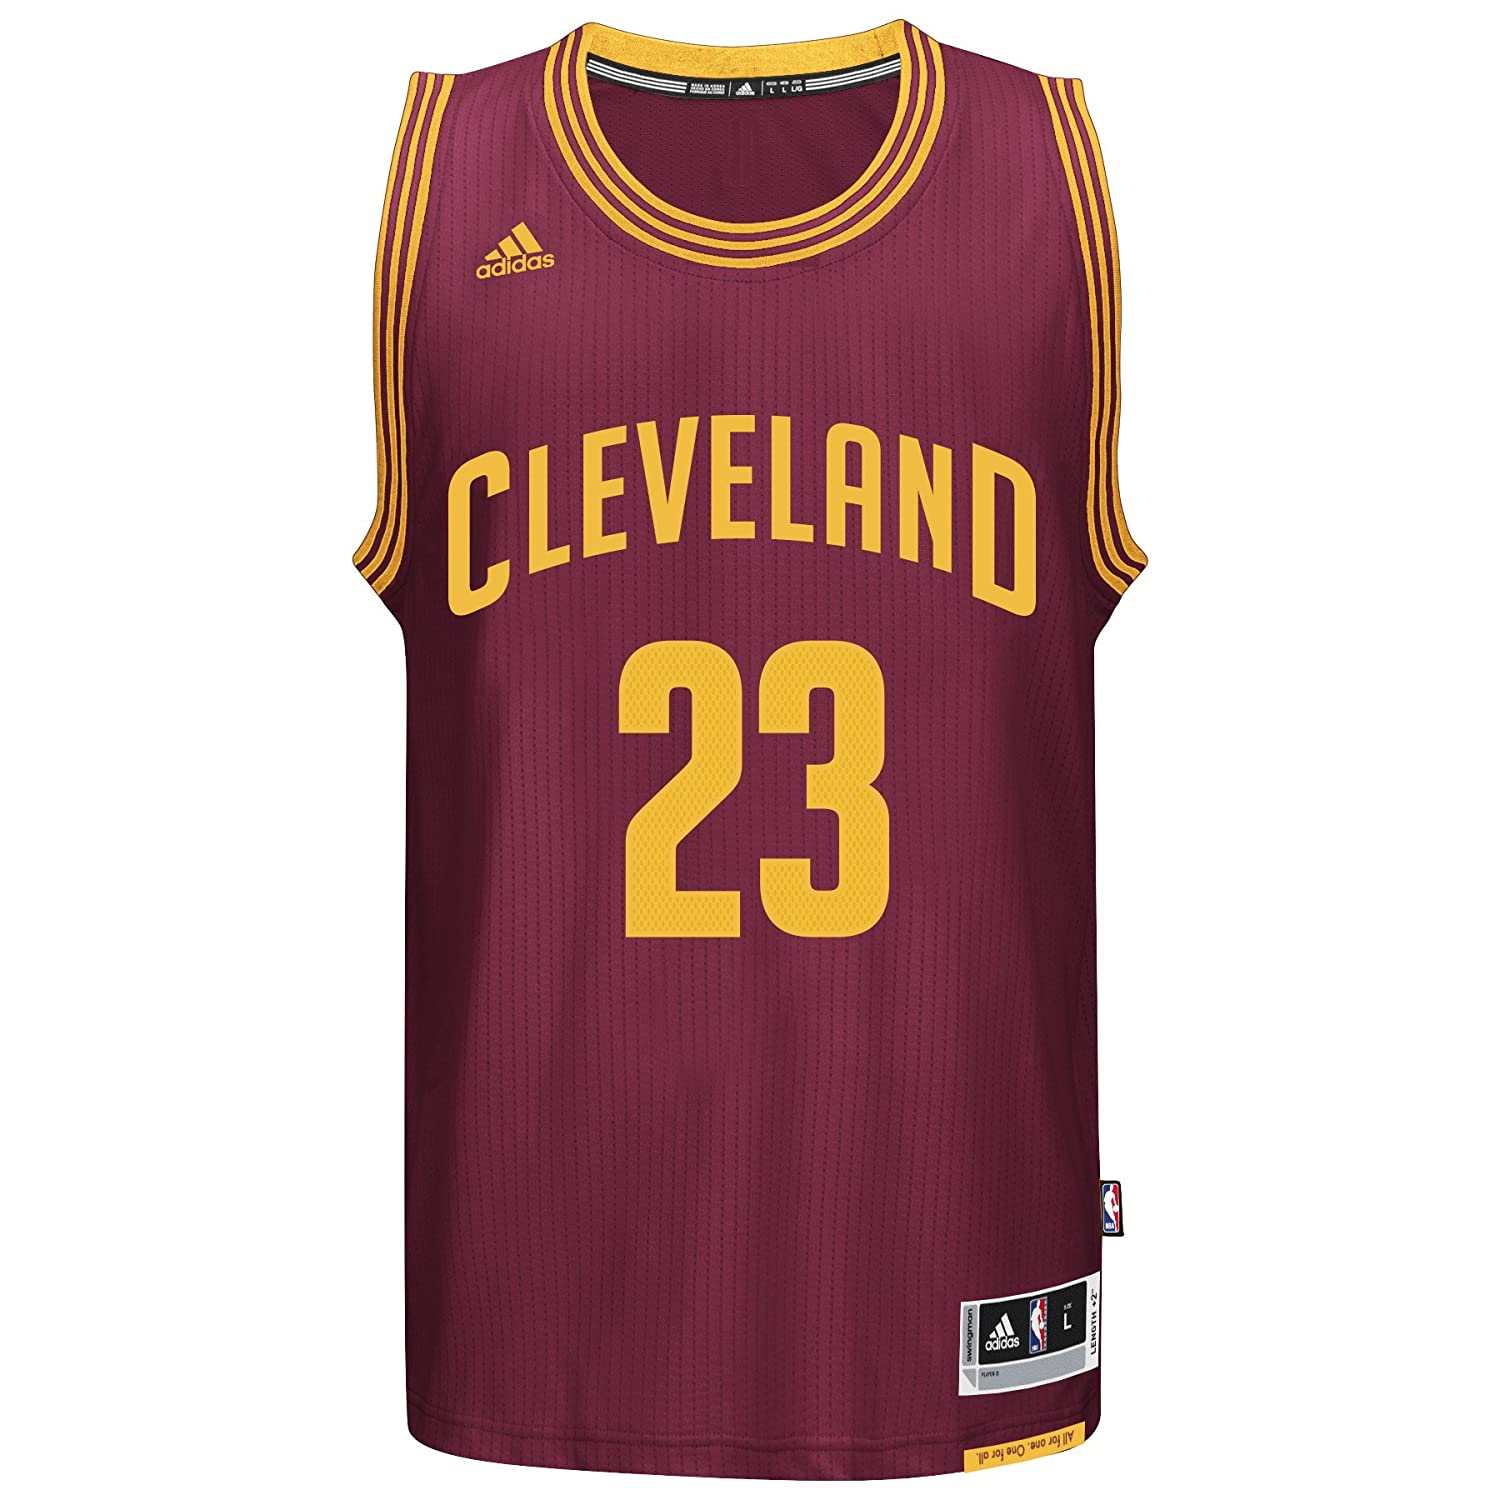 Cavs black t shirt jersey - Amazon Com Lebron James Men S Maroon Cleveland Cavaliers Adidas Swingman Jersey Sports Outdoors